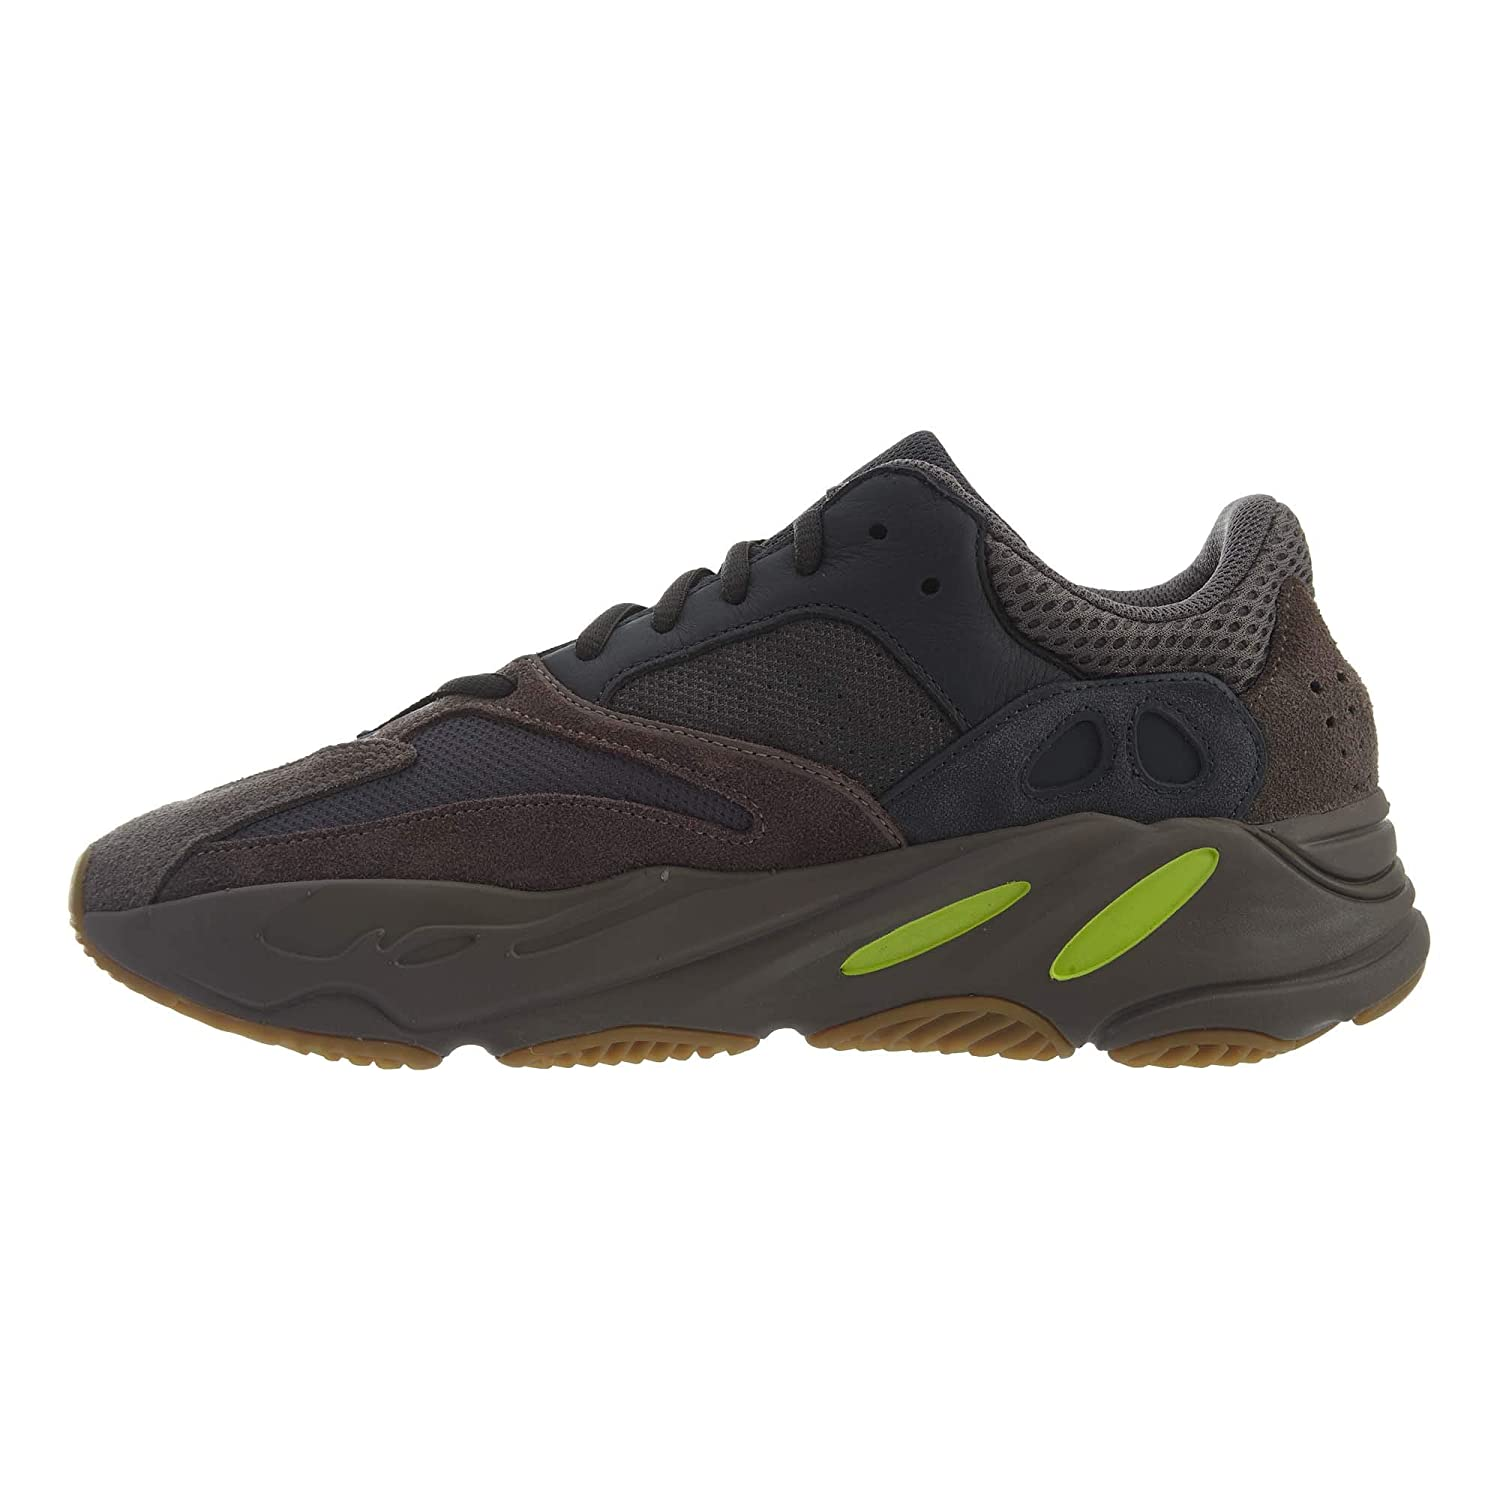 620f6f1575d1f Adidas Yeezy Boost 700  Wave Runner  - EE9614  Amazon.ca  Shoes   Handbags